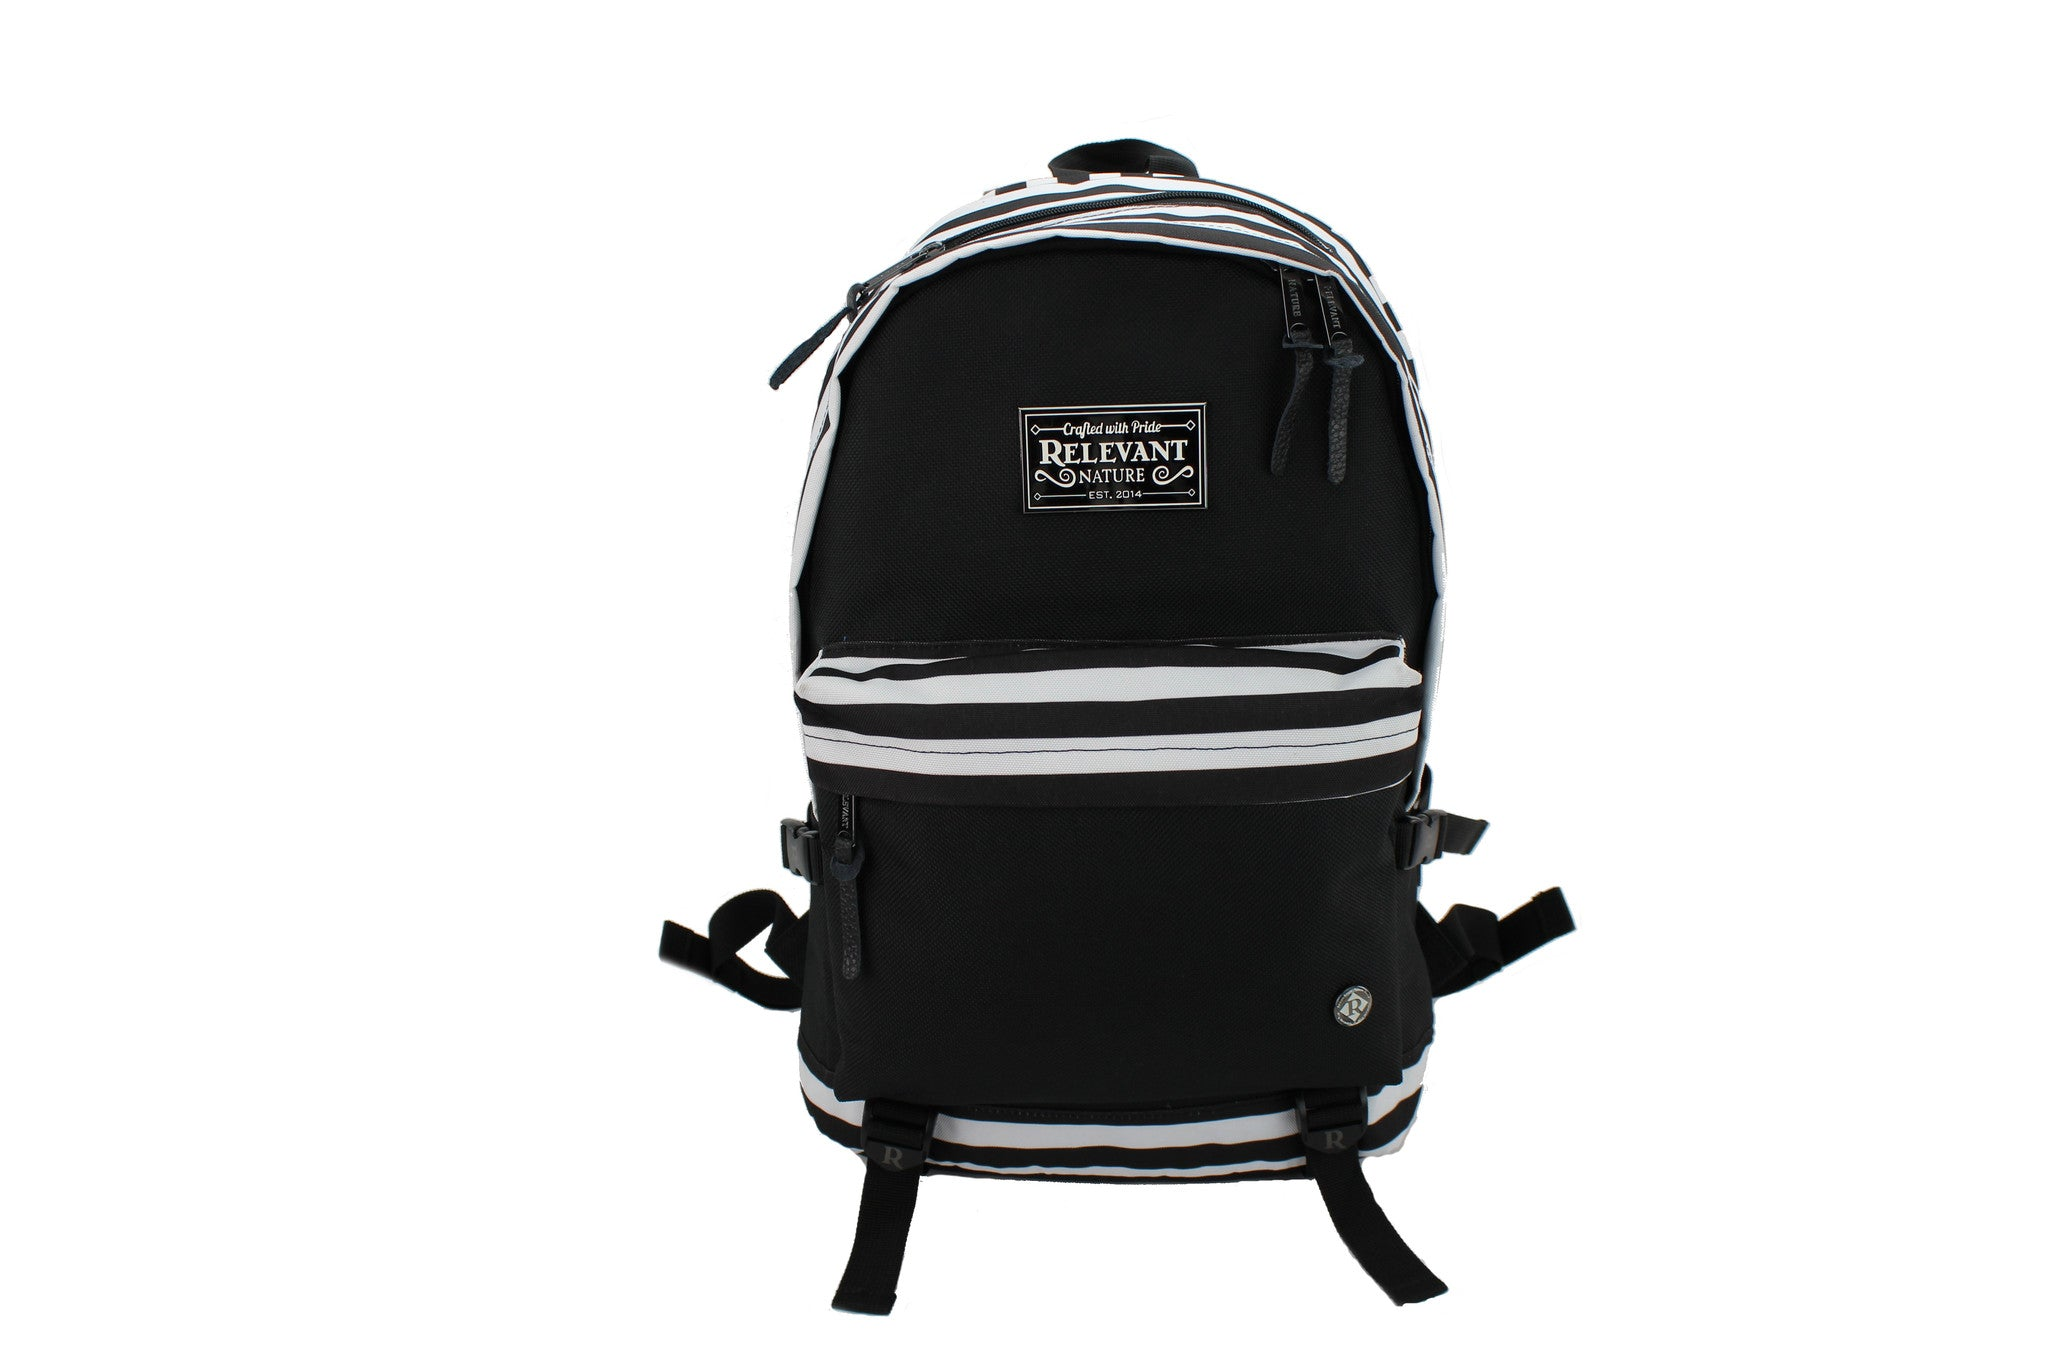 Bronx Striped Backpack - Relevant Nature